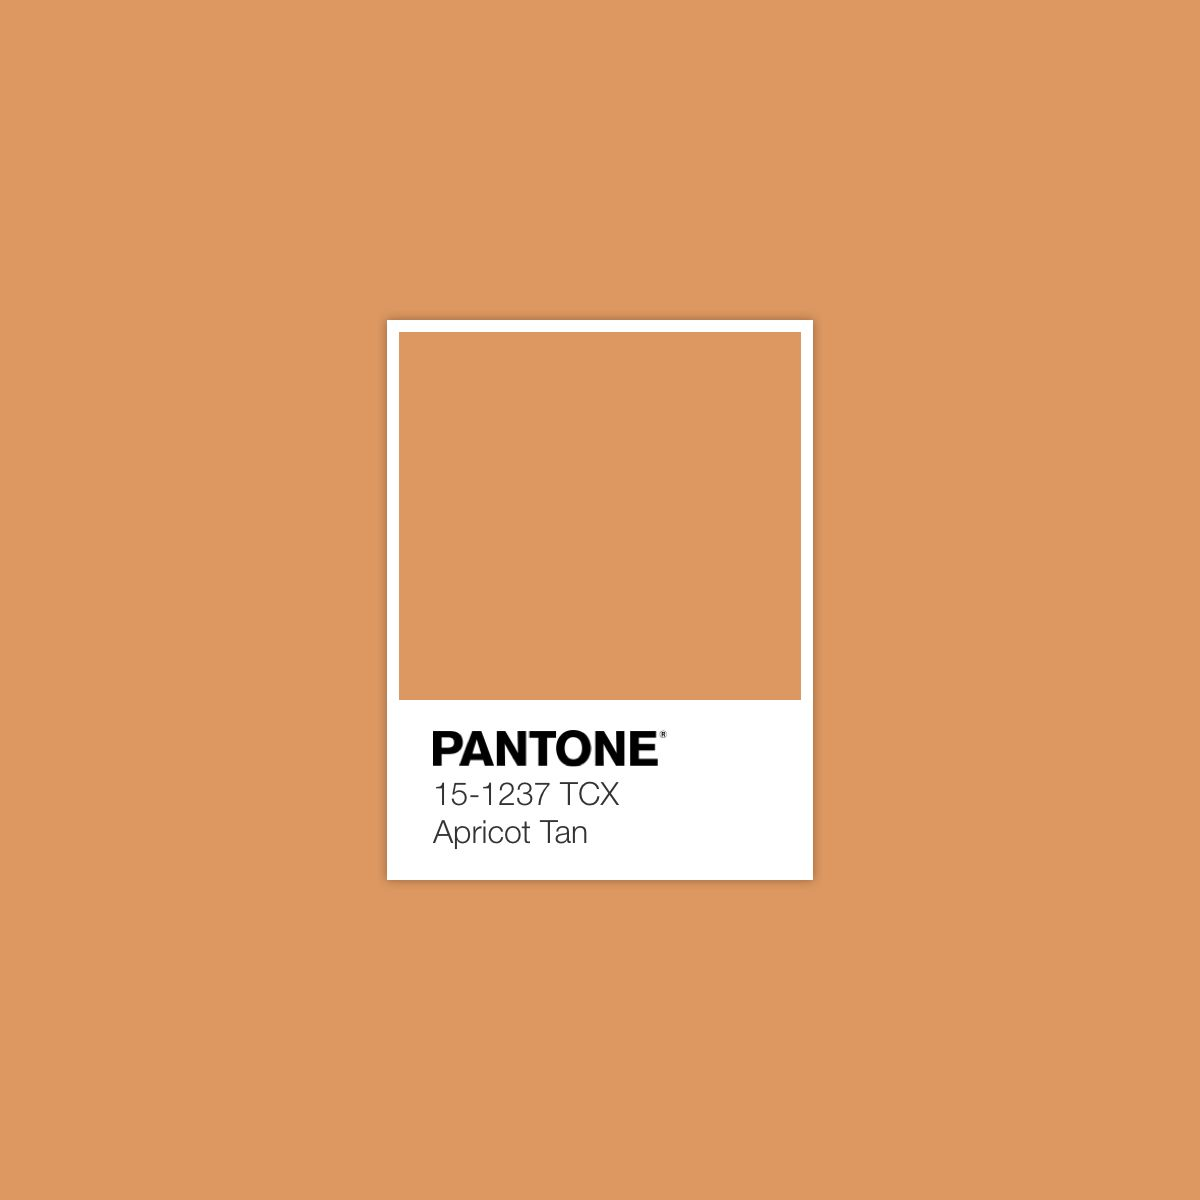 apricot tan pantone color of the day may 19 2017. Black Bedroom Furniture Sets. Home Design Ideas